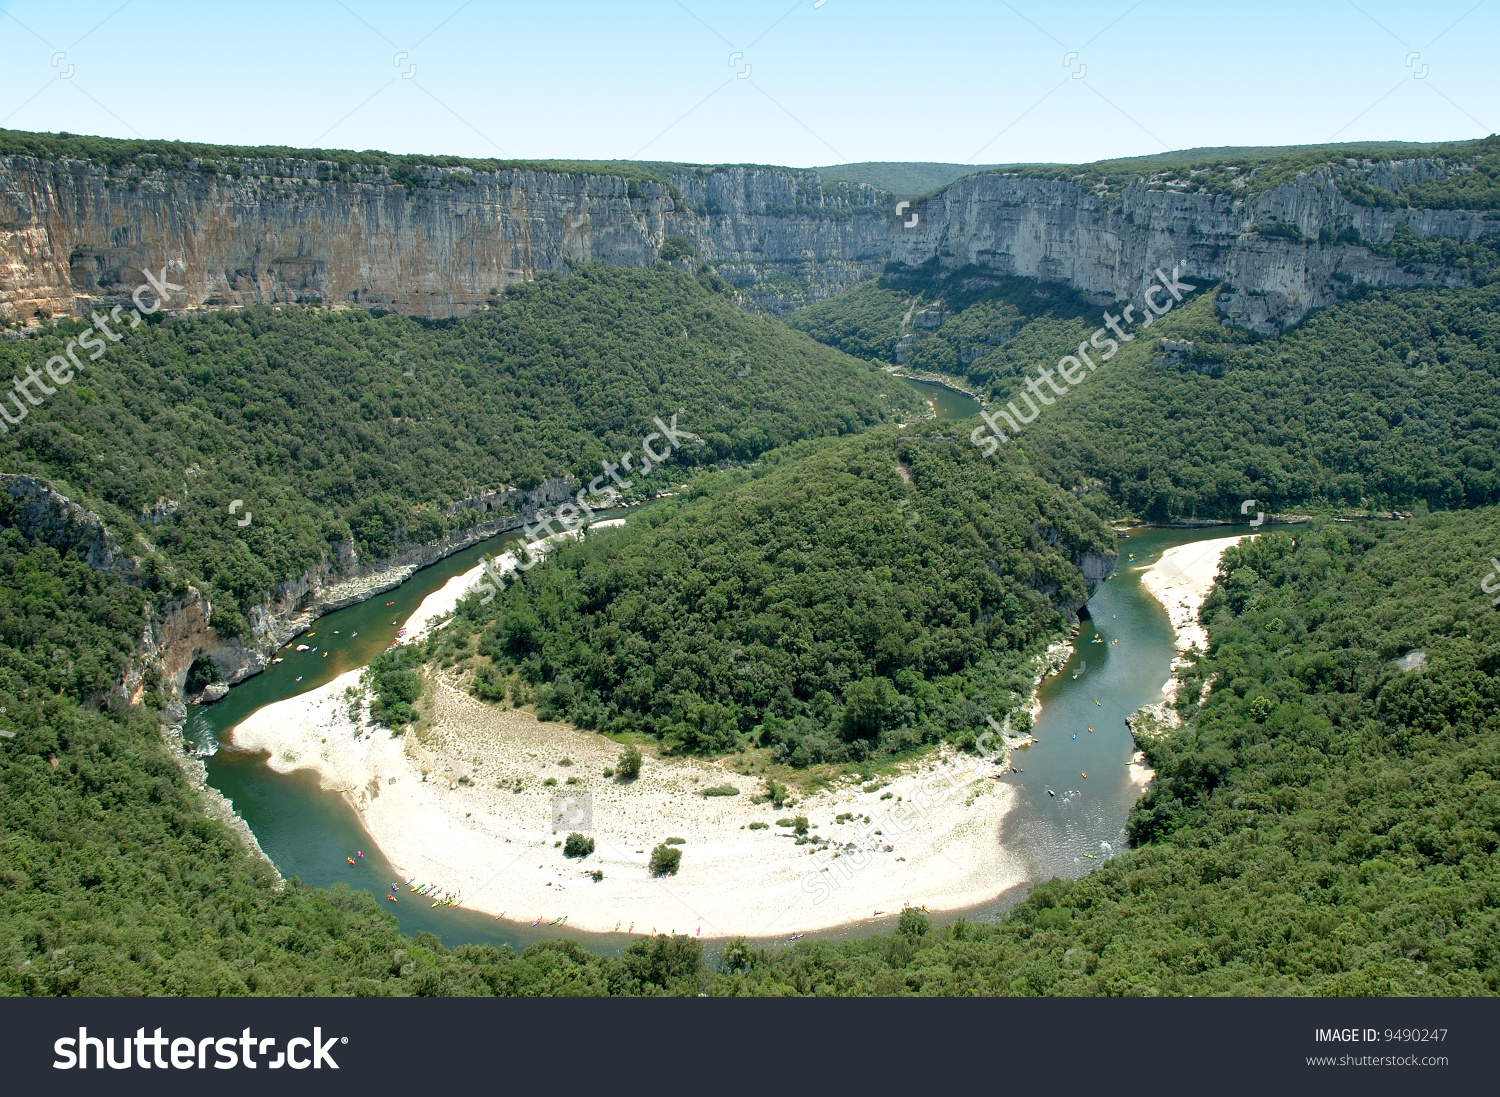 Isthmus Ardeche Gorges Picture Taken Taken Stock Photo 9490247.